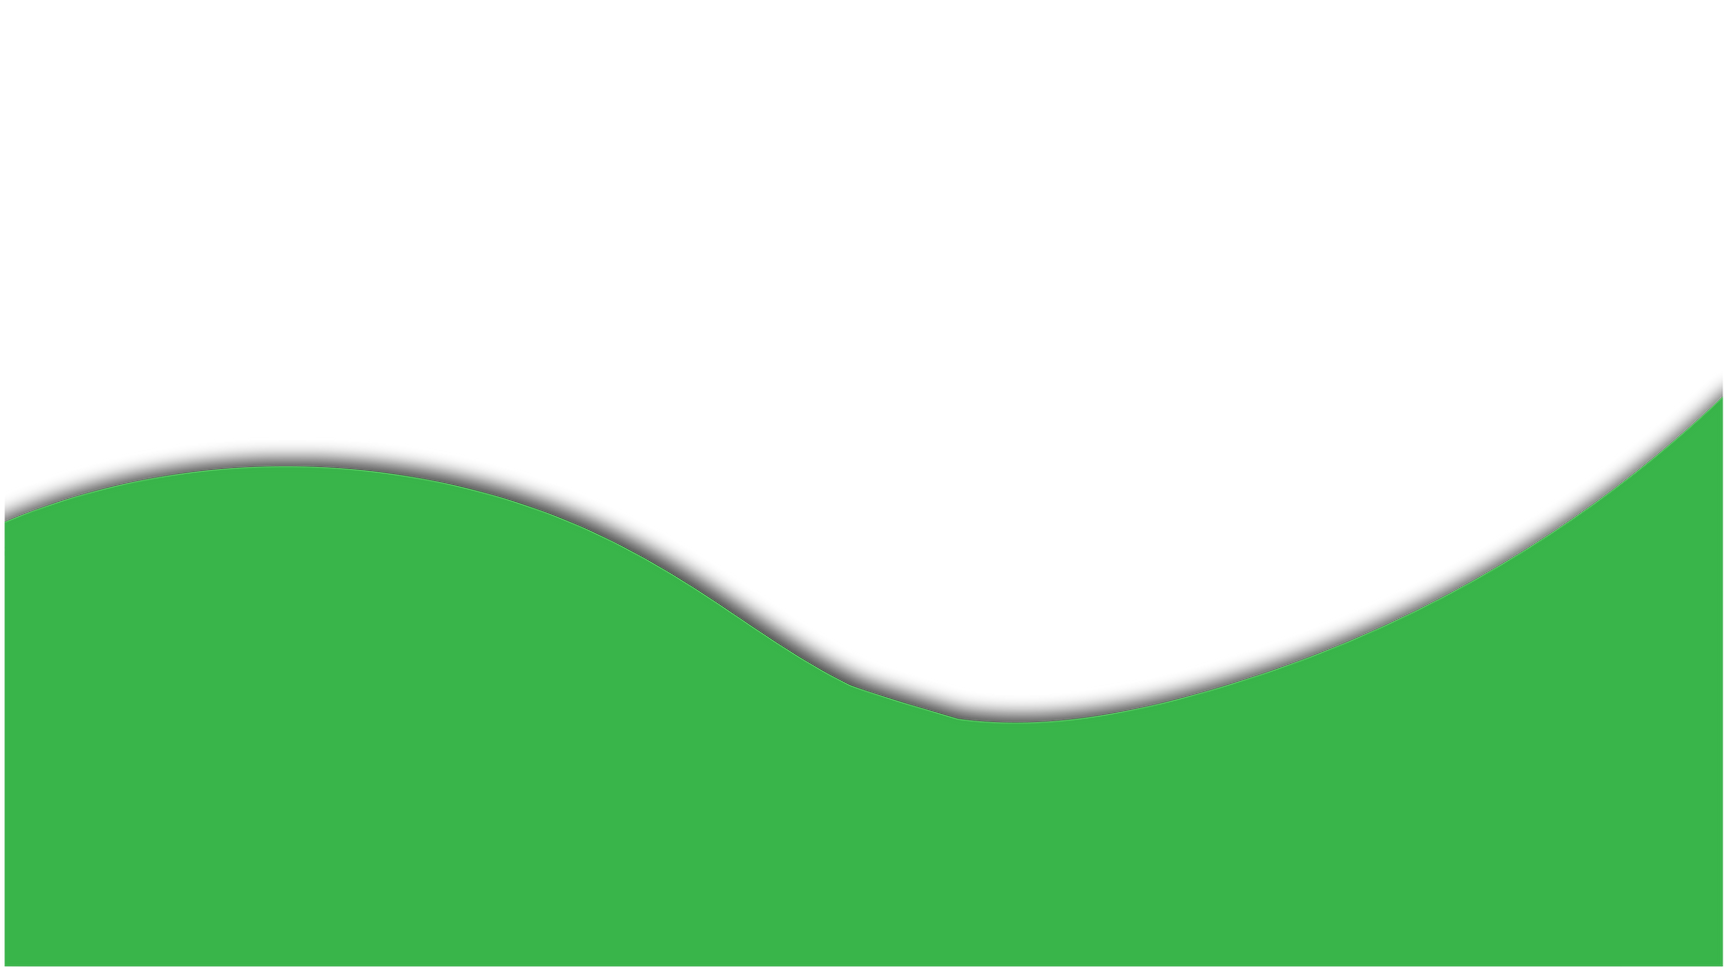 waves_grn_green.png